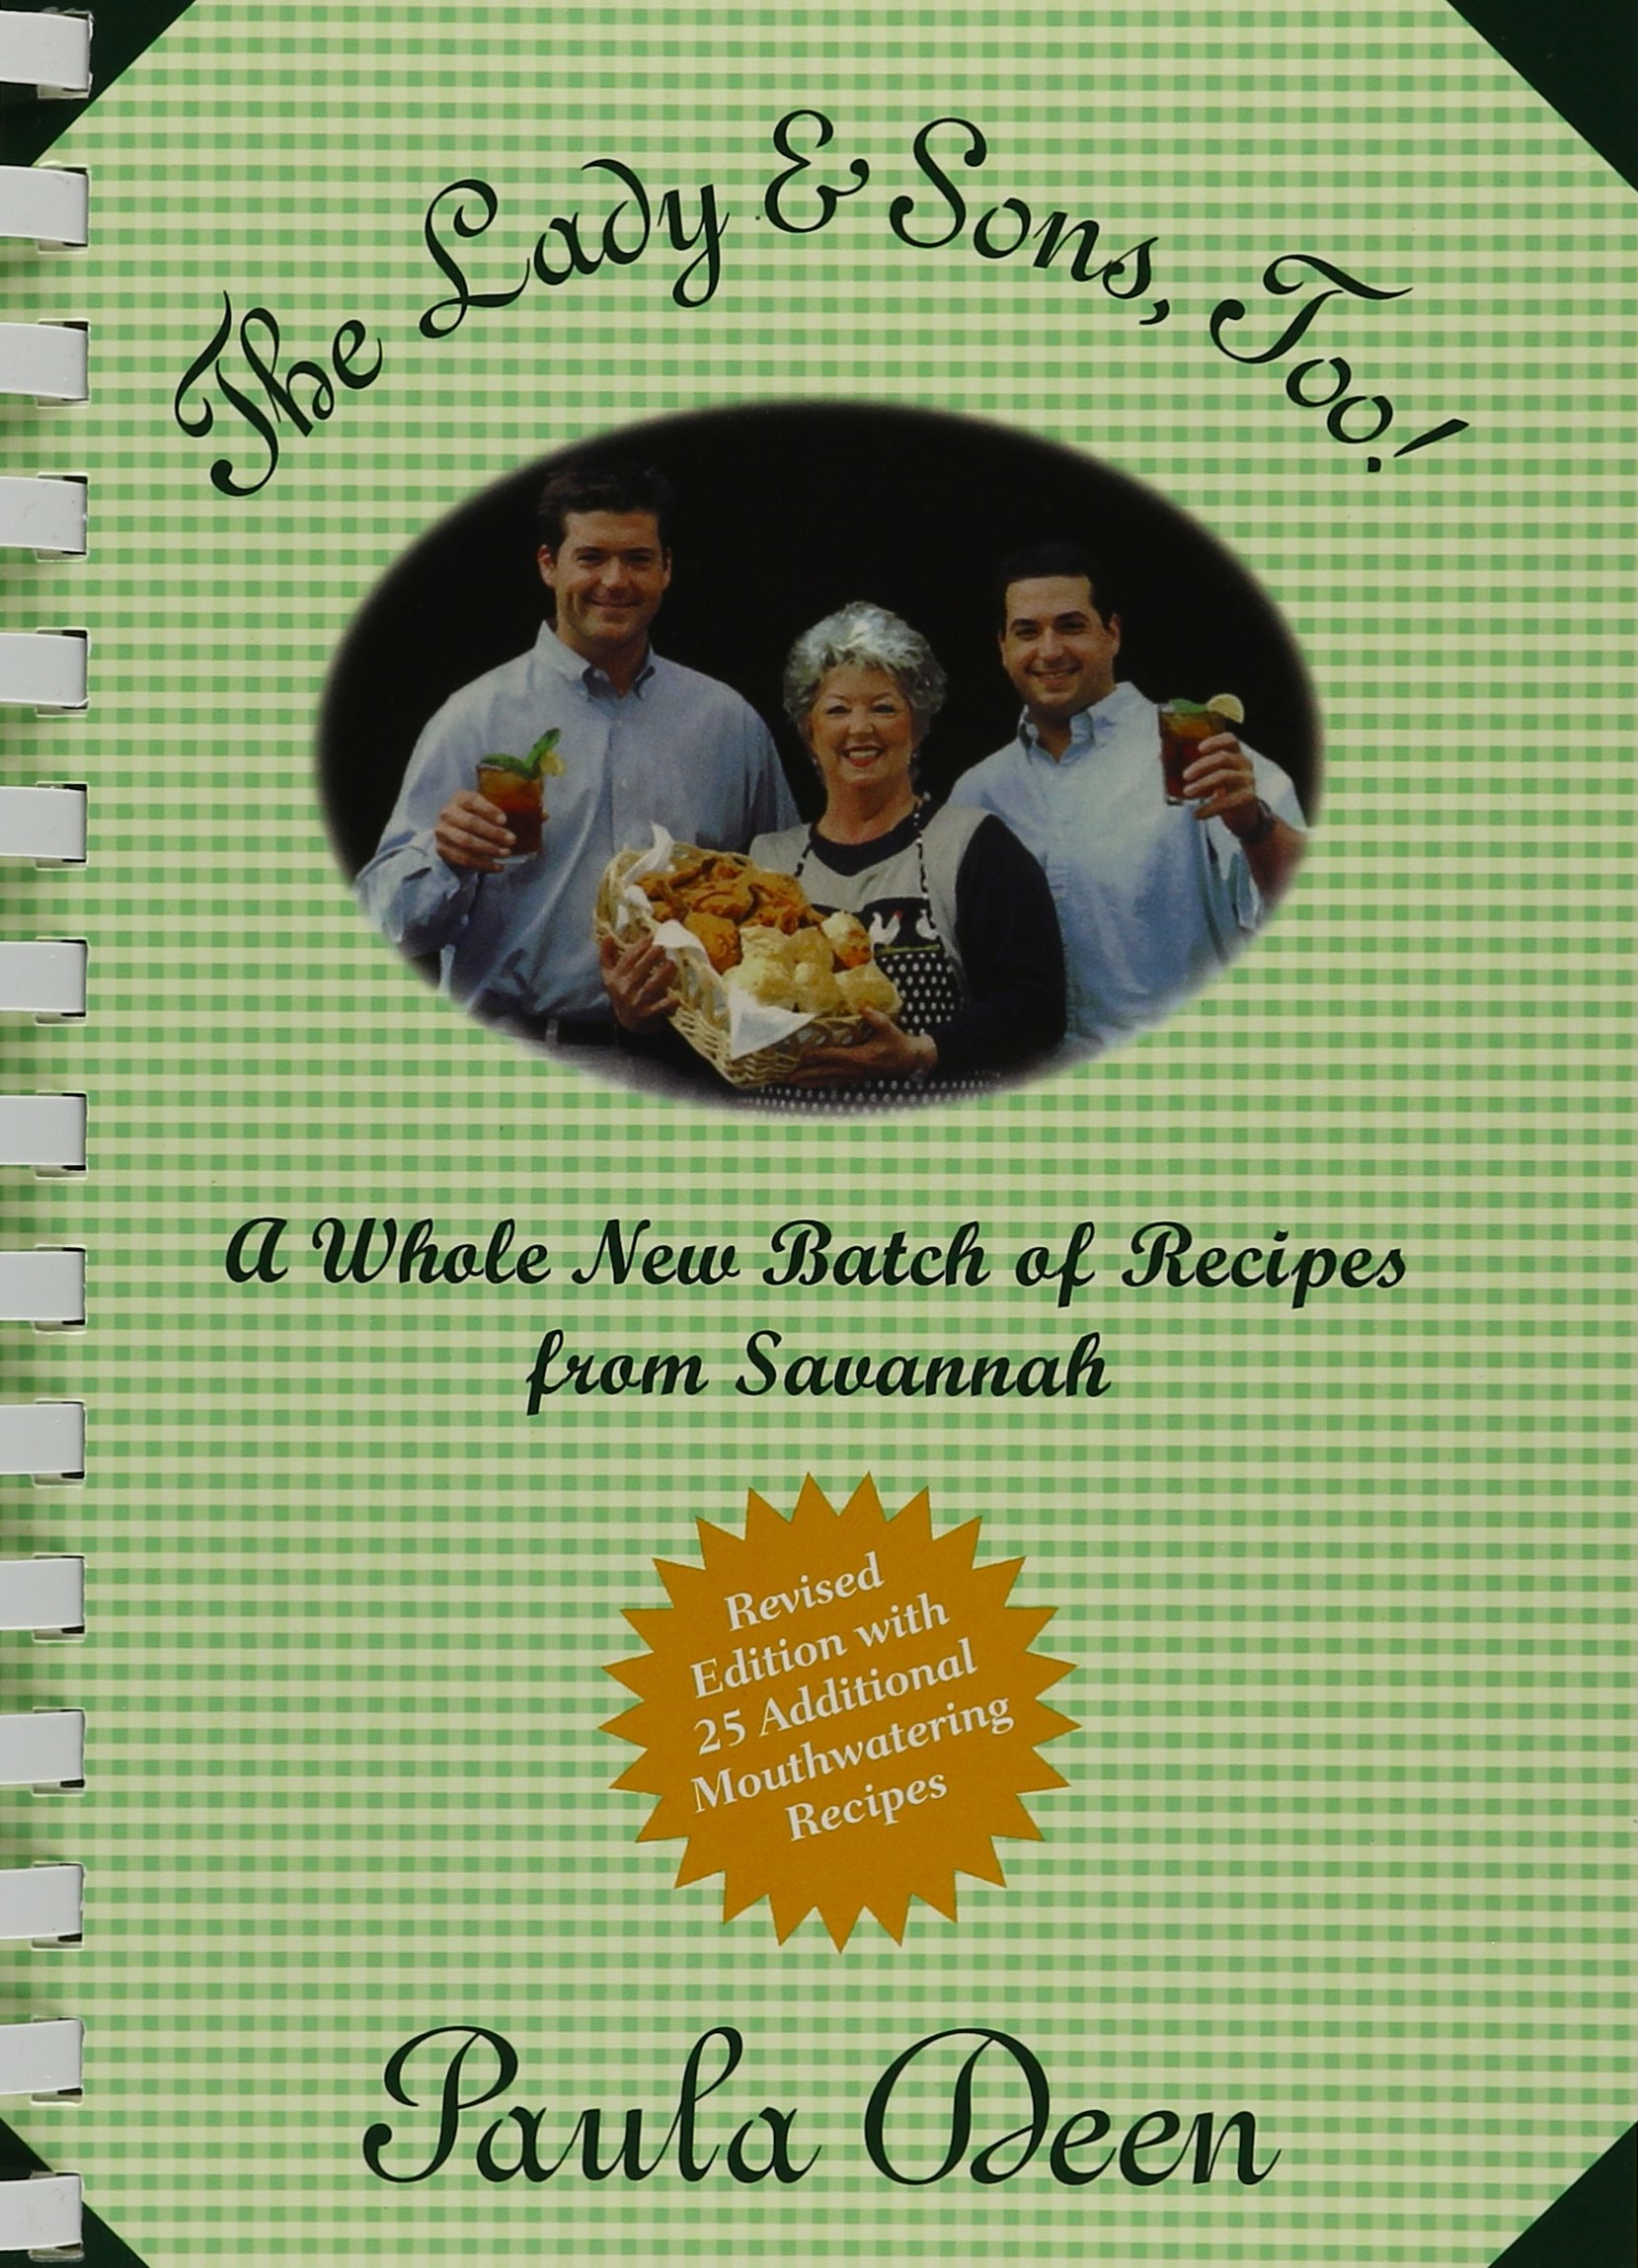 Download The Lady and Sons Too!: A Whole New Batch of Recipes from Savannah pdf